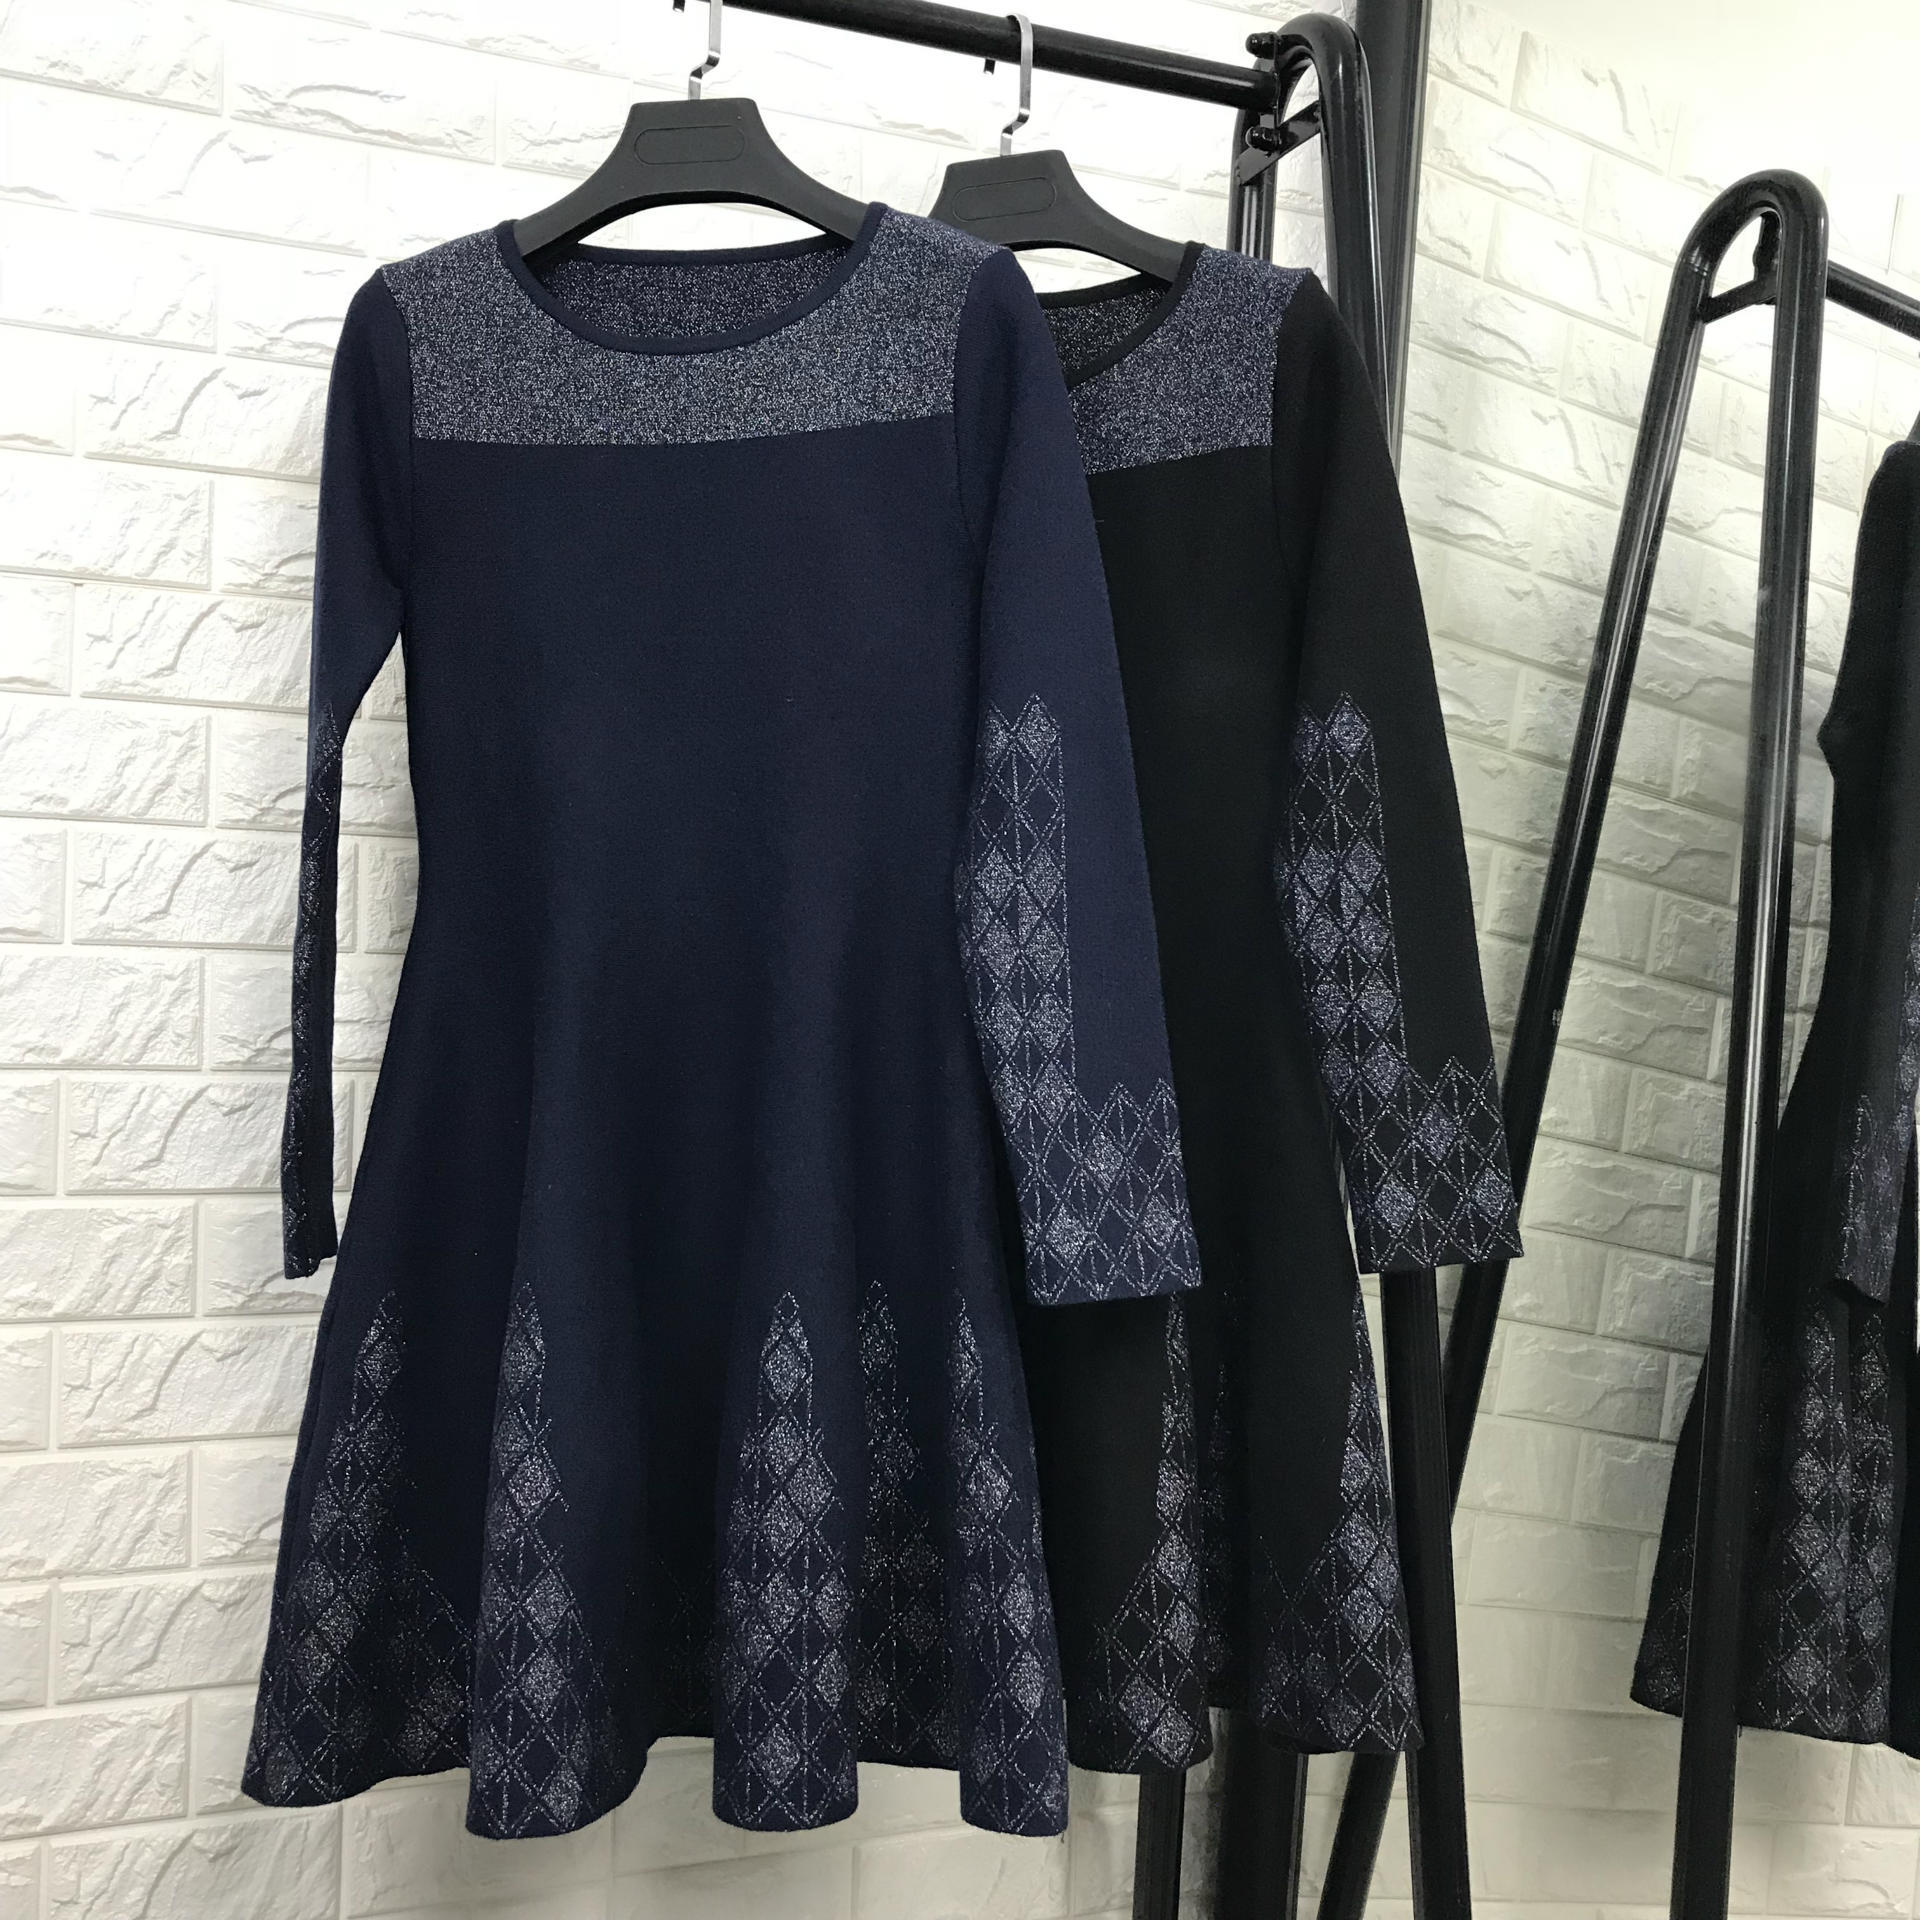 New 2018 spring autumn women fashion wool knit sweater dress long sleeve floral jacquard fit and flare elegant sexy dresses blue